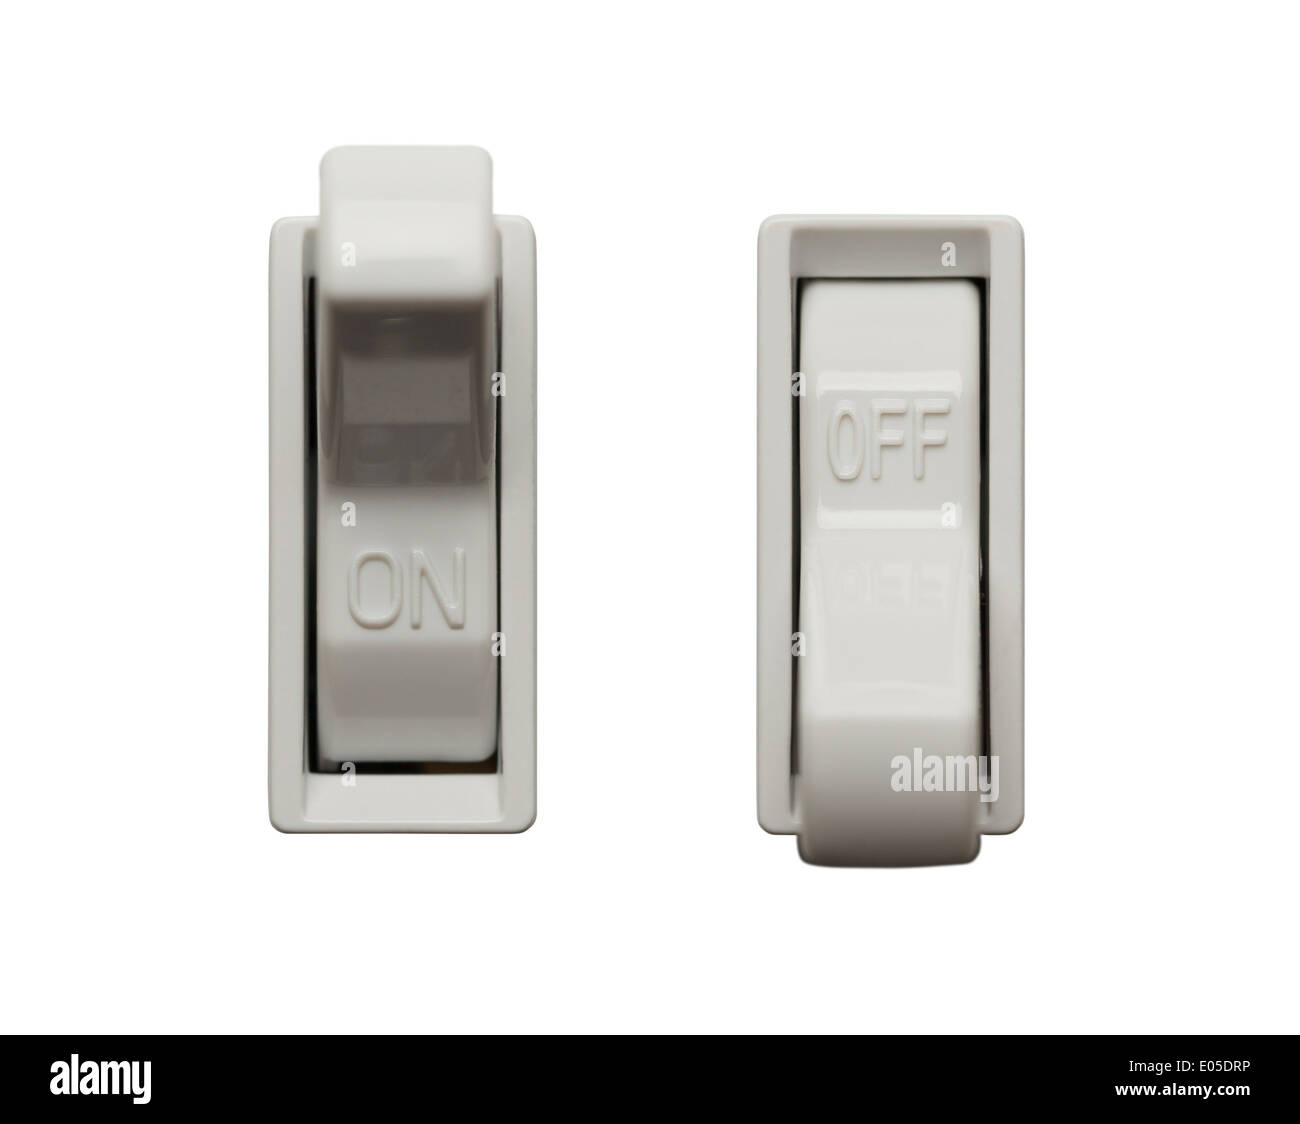 Light Switch Stock Photos & Light Switch Stock Images - Alamy